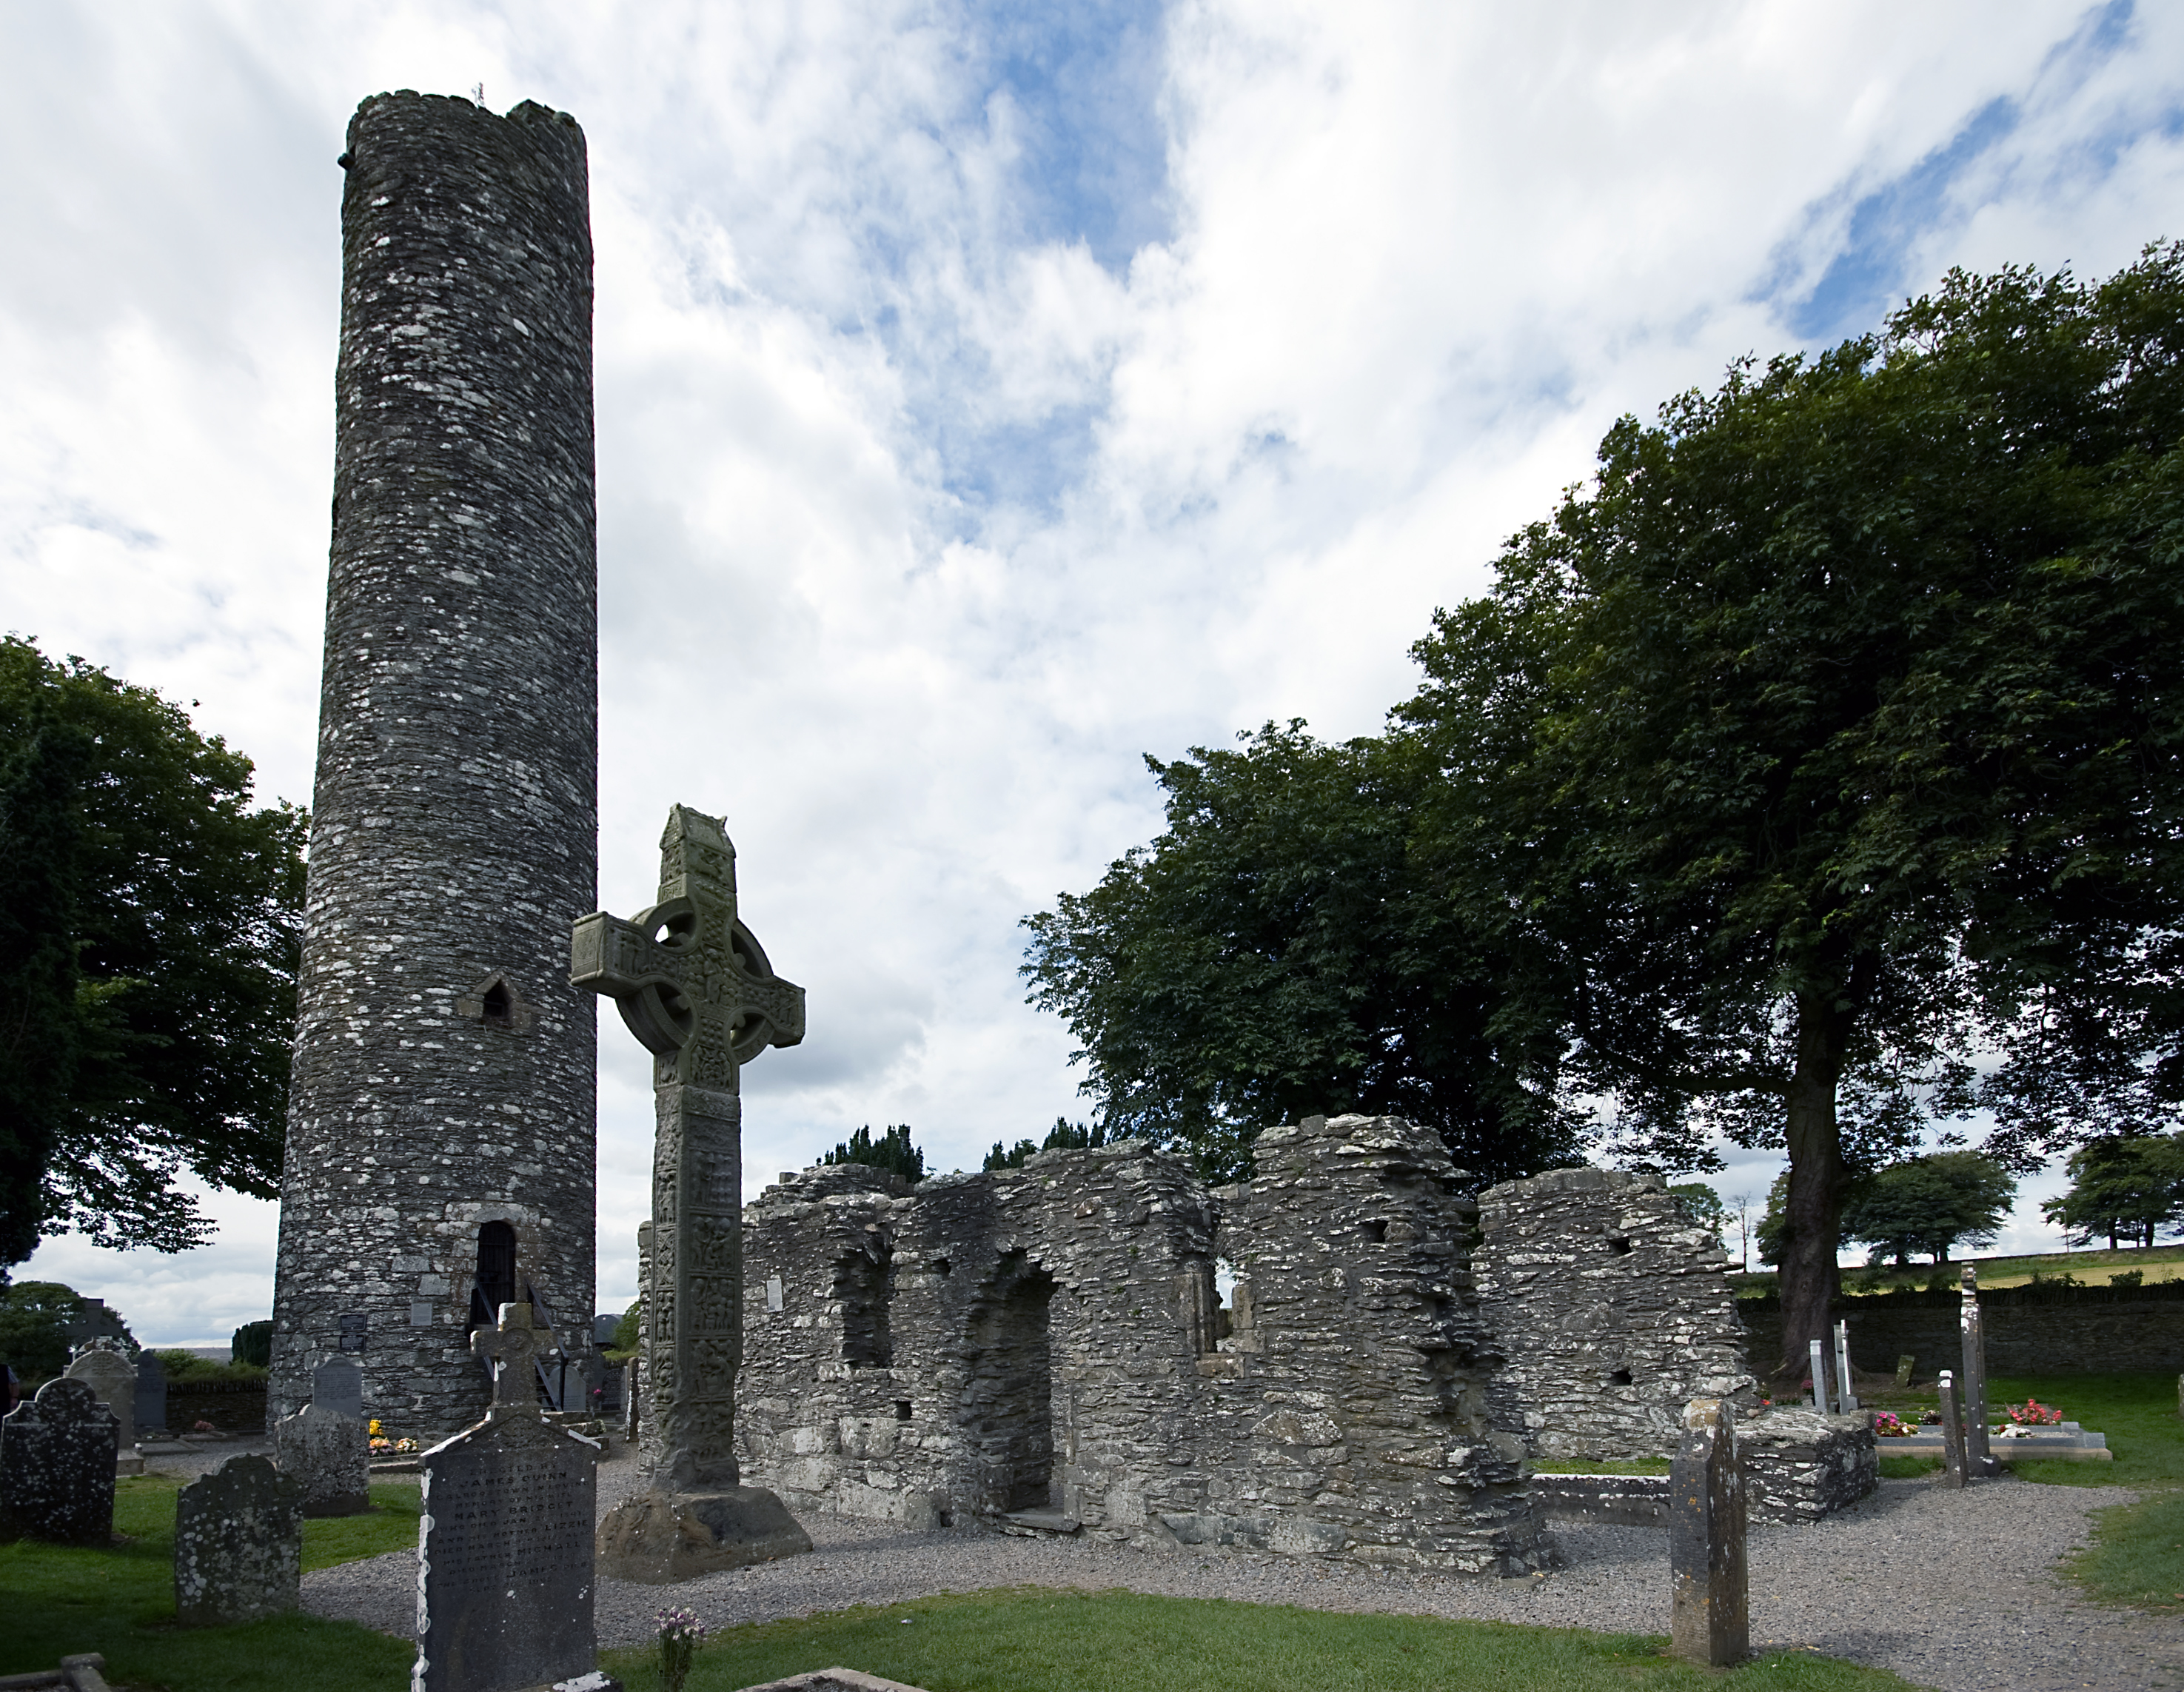 Monasterboice Church and Tower, and Muiredach's High Cross